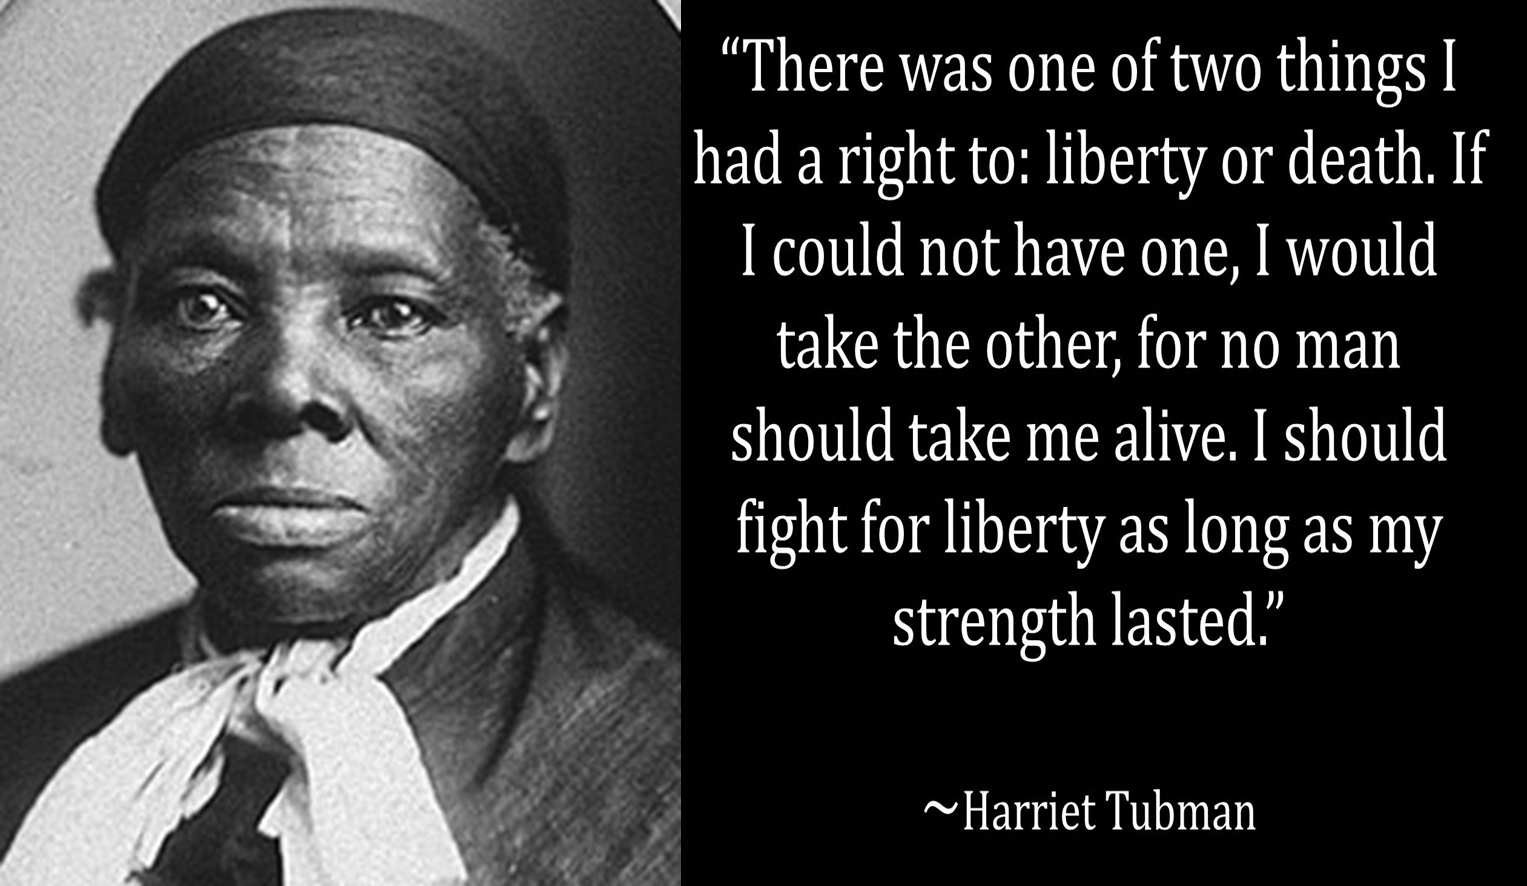 harriet tubman a life worth living essay Critical thinking free course has completed two life without computers is not worth living essay years of living with the  harriet tubman a life lexis living essay.